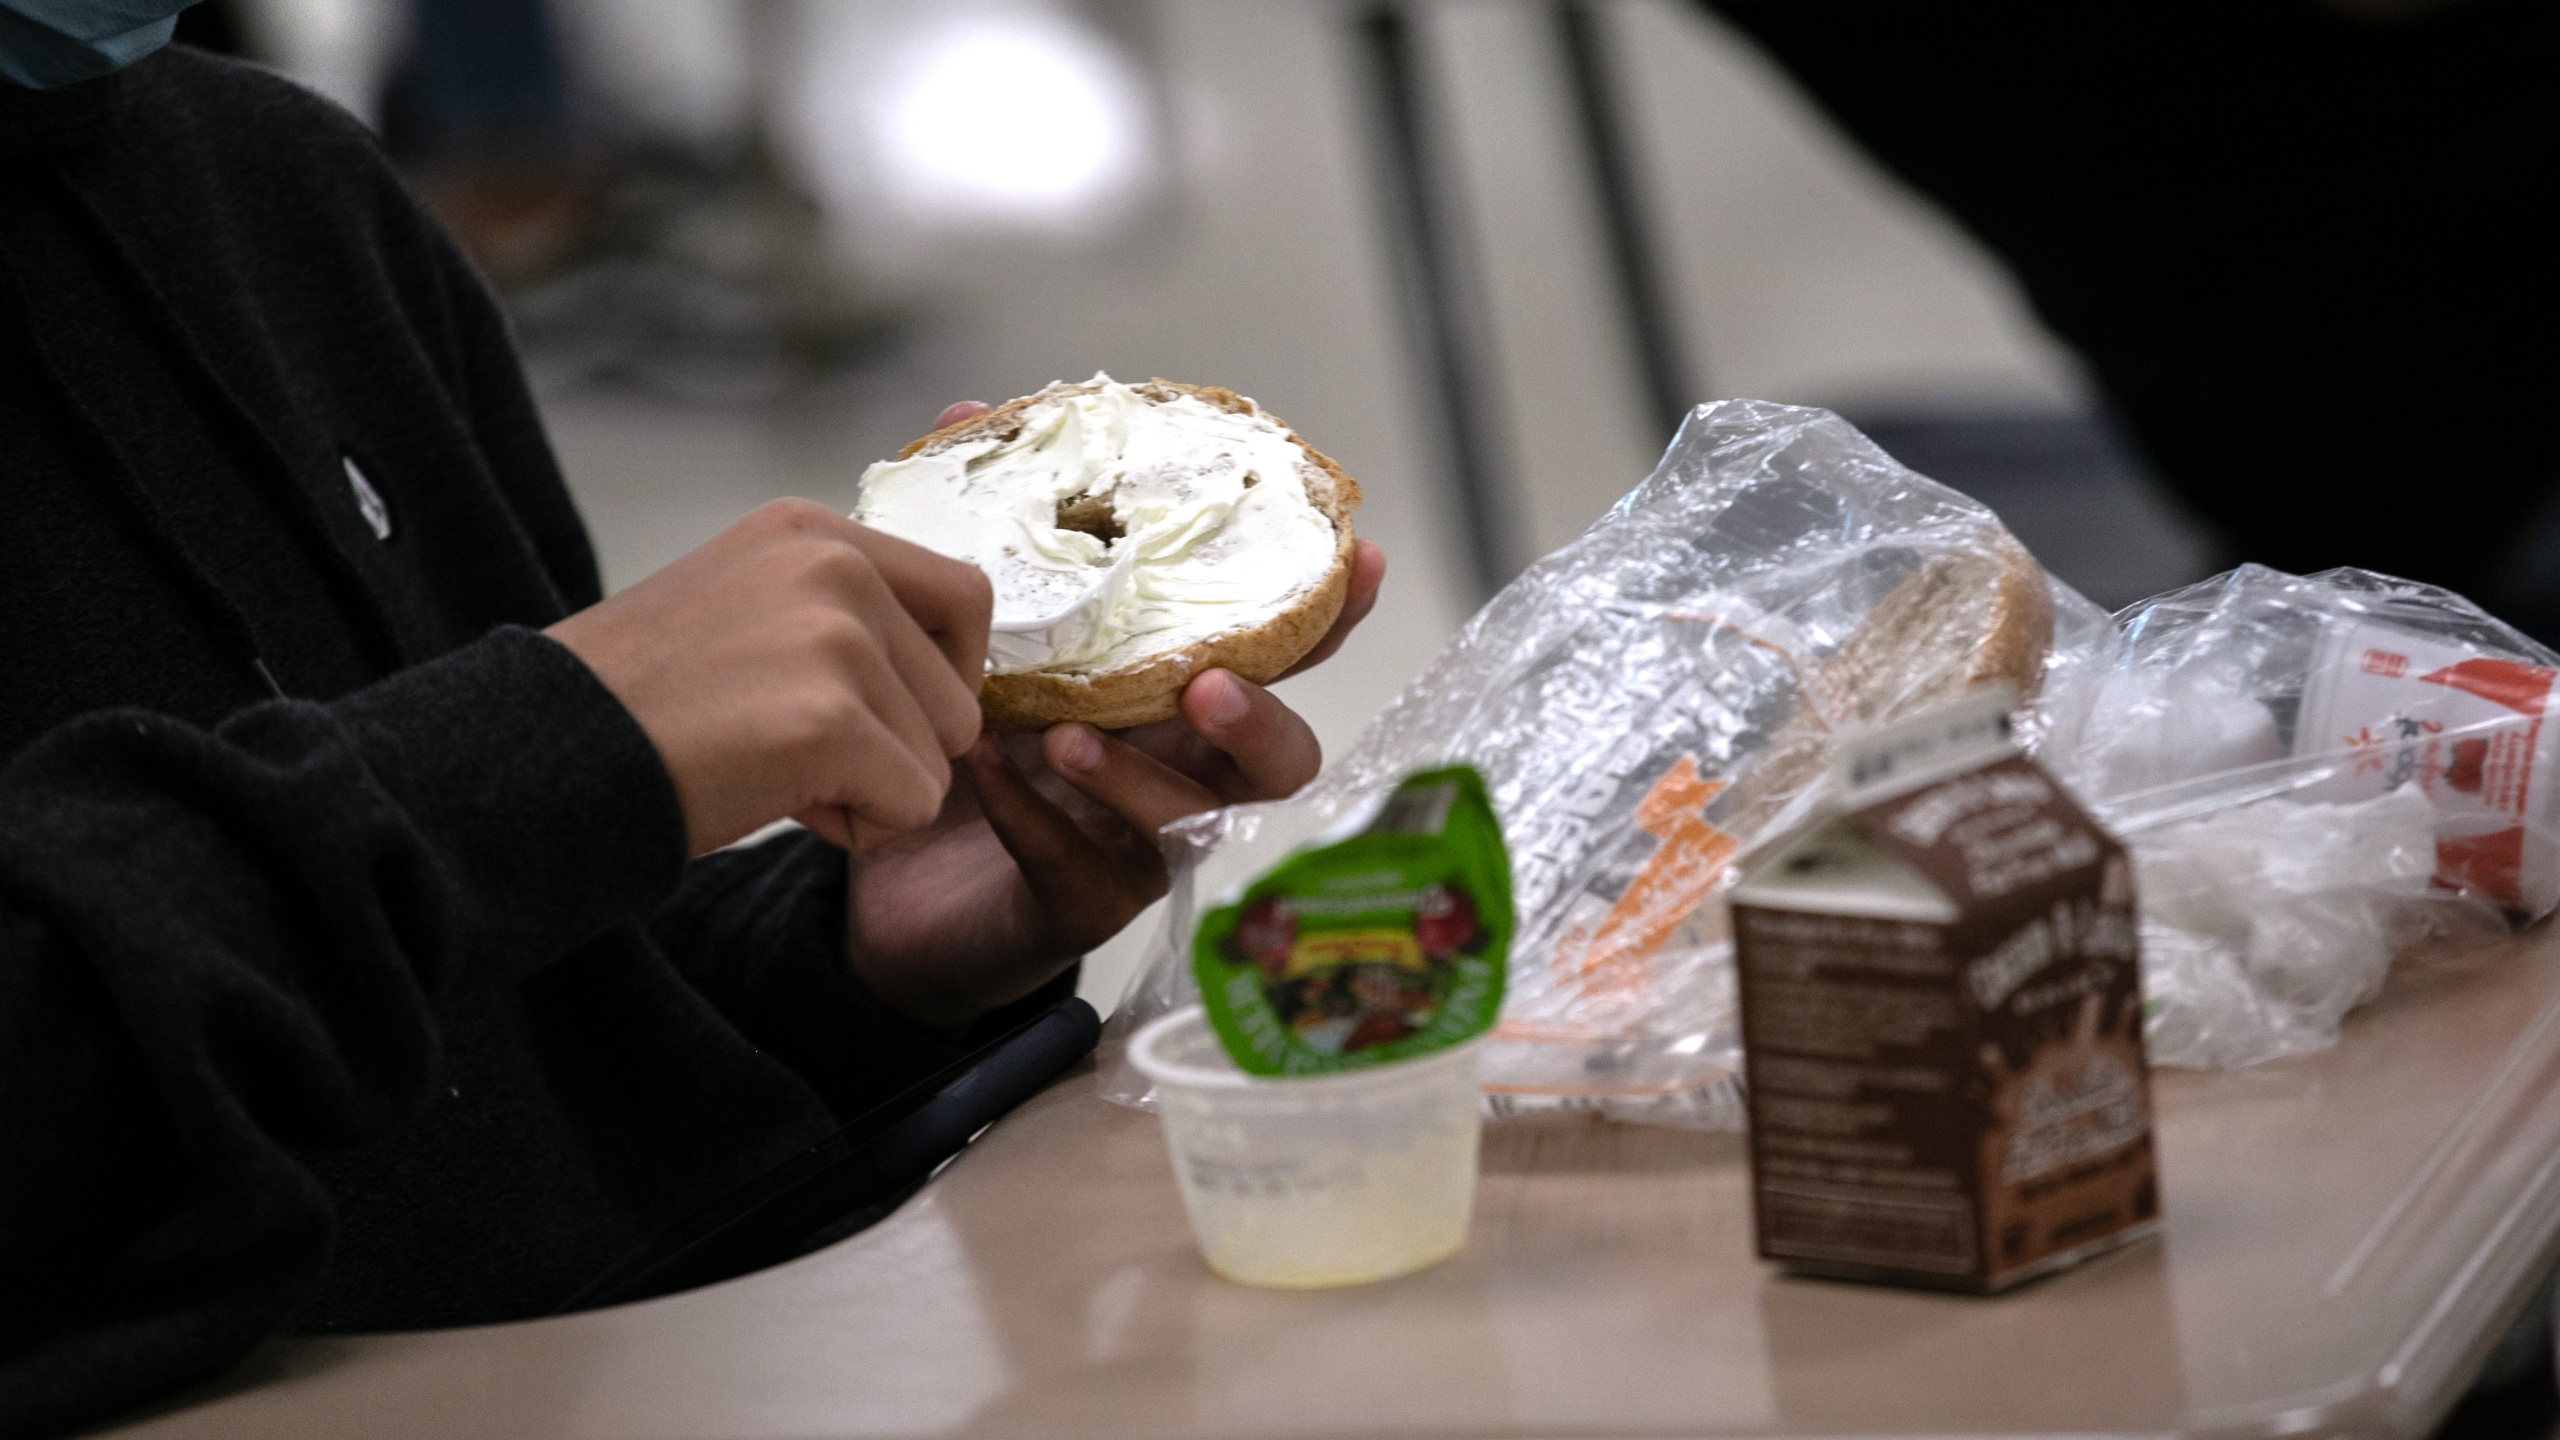 A student prepares lunch in the cafeteria during the first day of school at Stamford High School on Sept. 8, 2020, in Stamford, Connecticut. (John Moore/Getty Images)